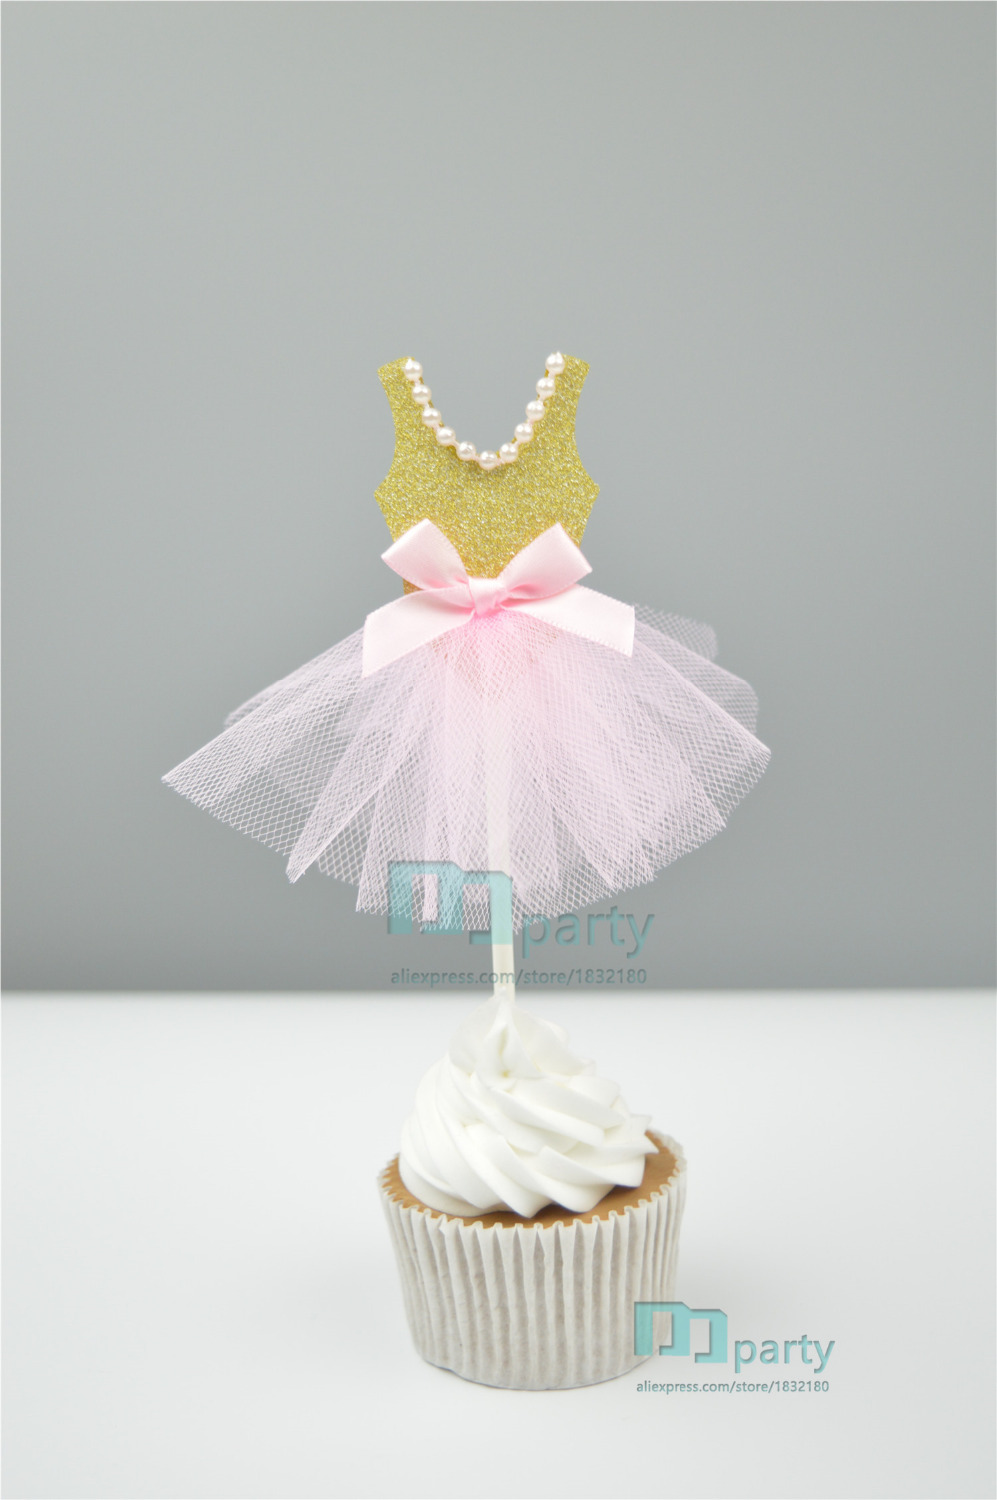 Handmade Pink princess dress wedding dress Girl Theme Party Supplies ...